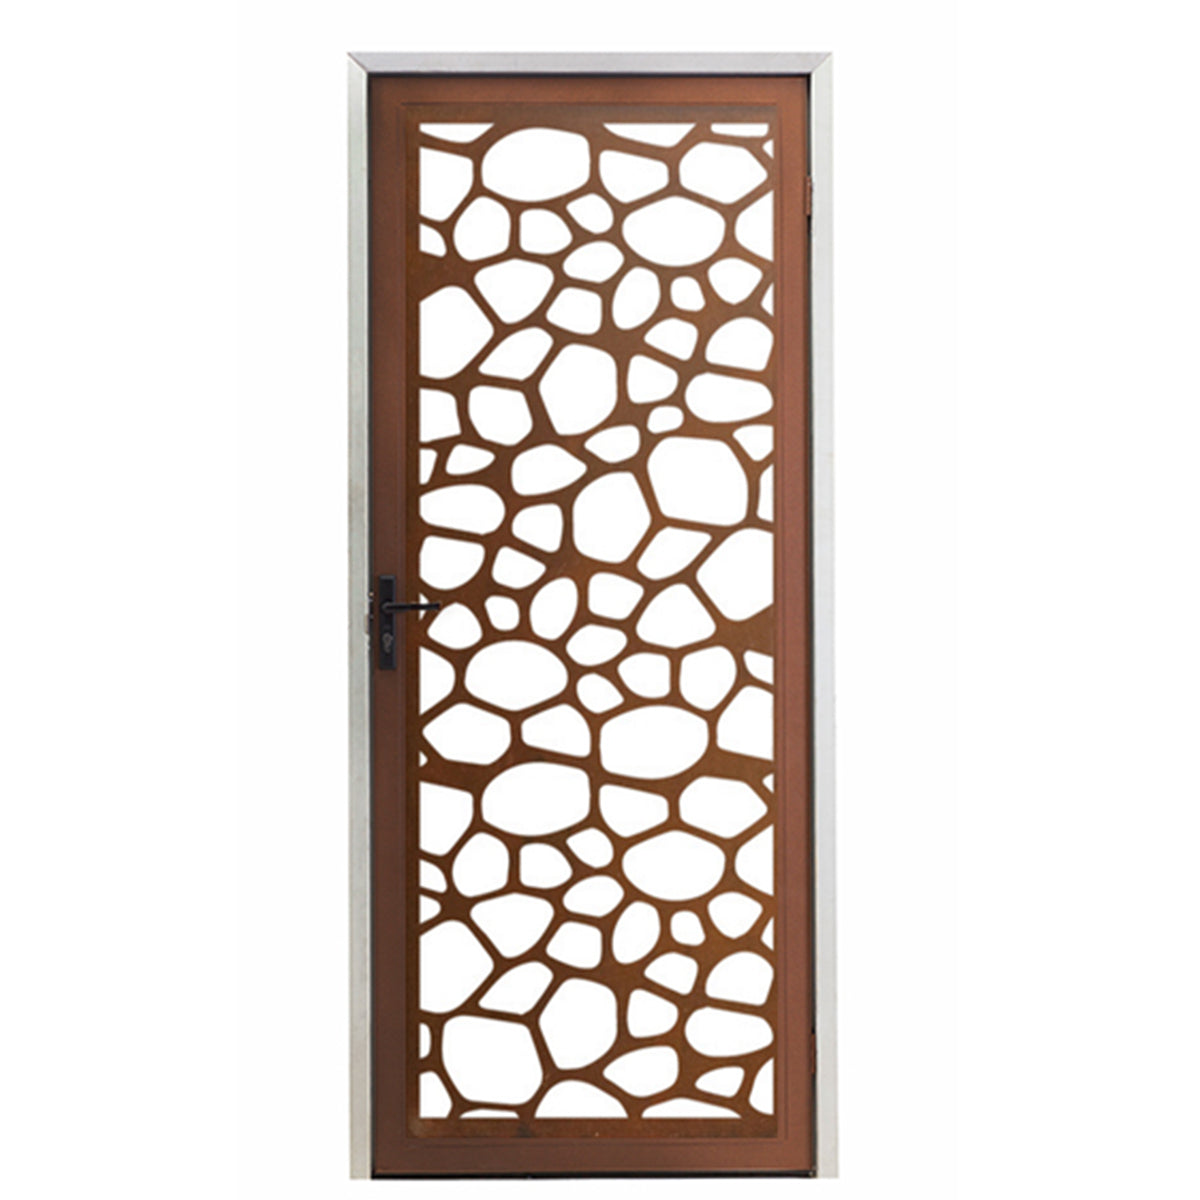 Vornio Screen Door